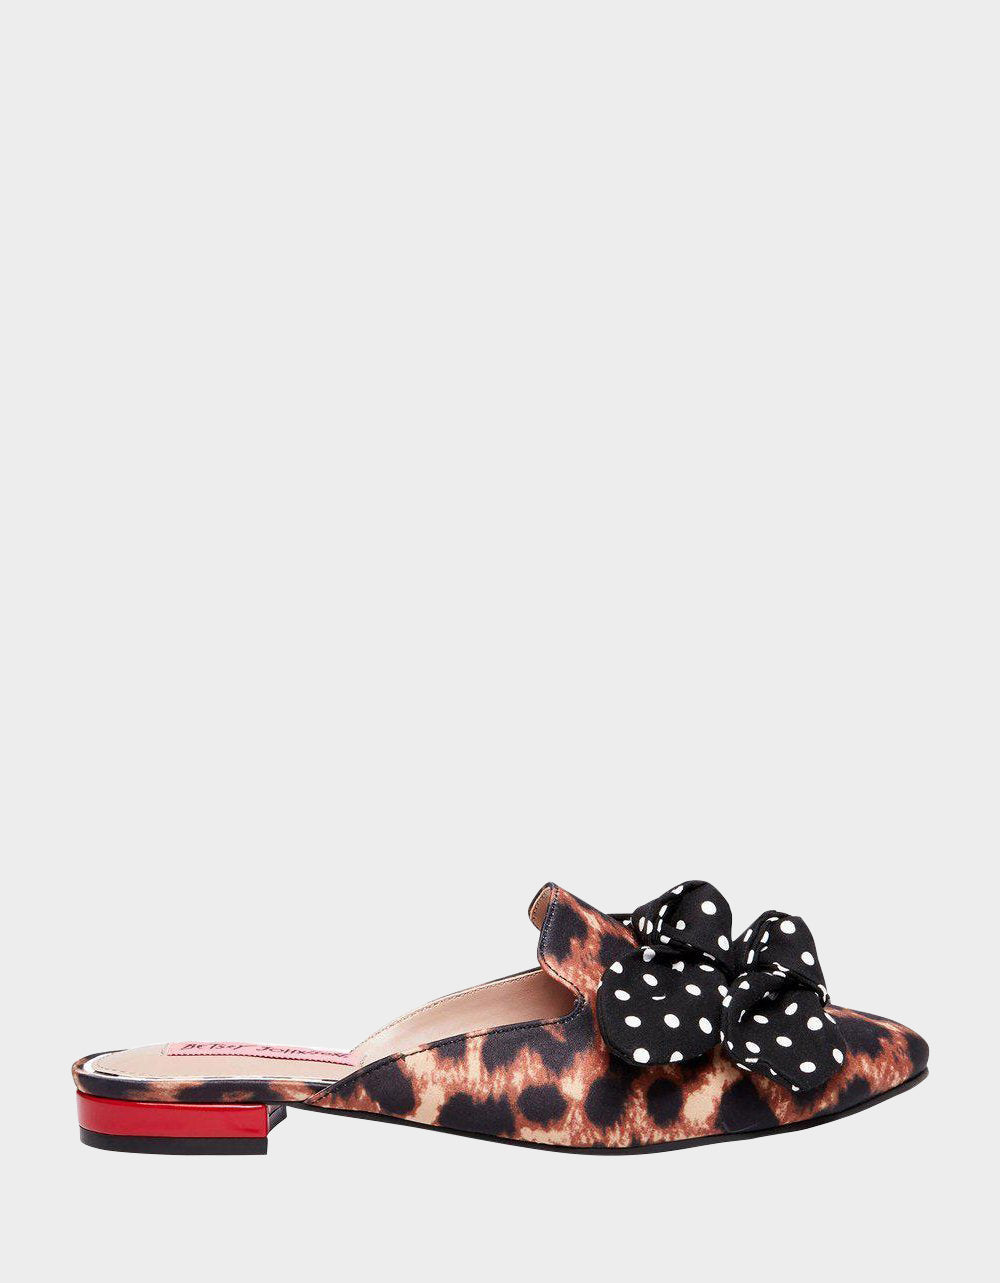 ADINA LEOPARD MULTI - SHOES - Betsey Johnson